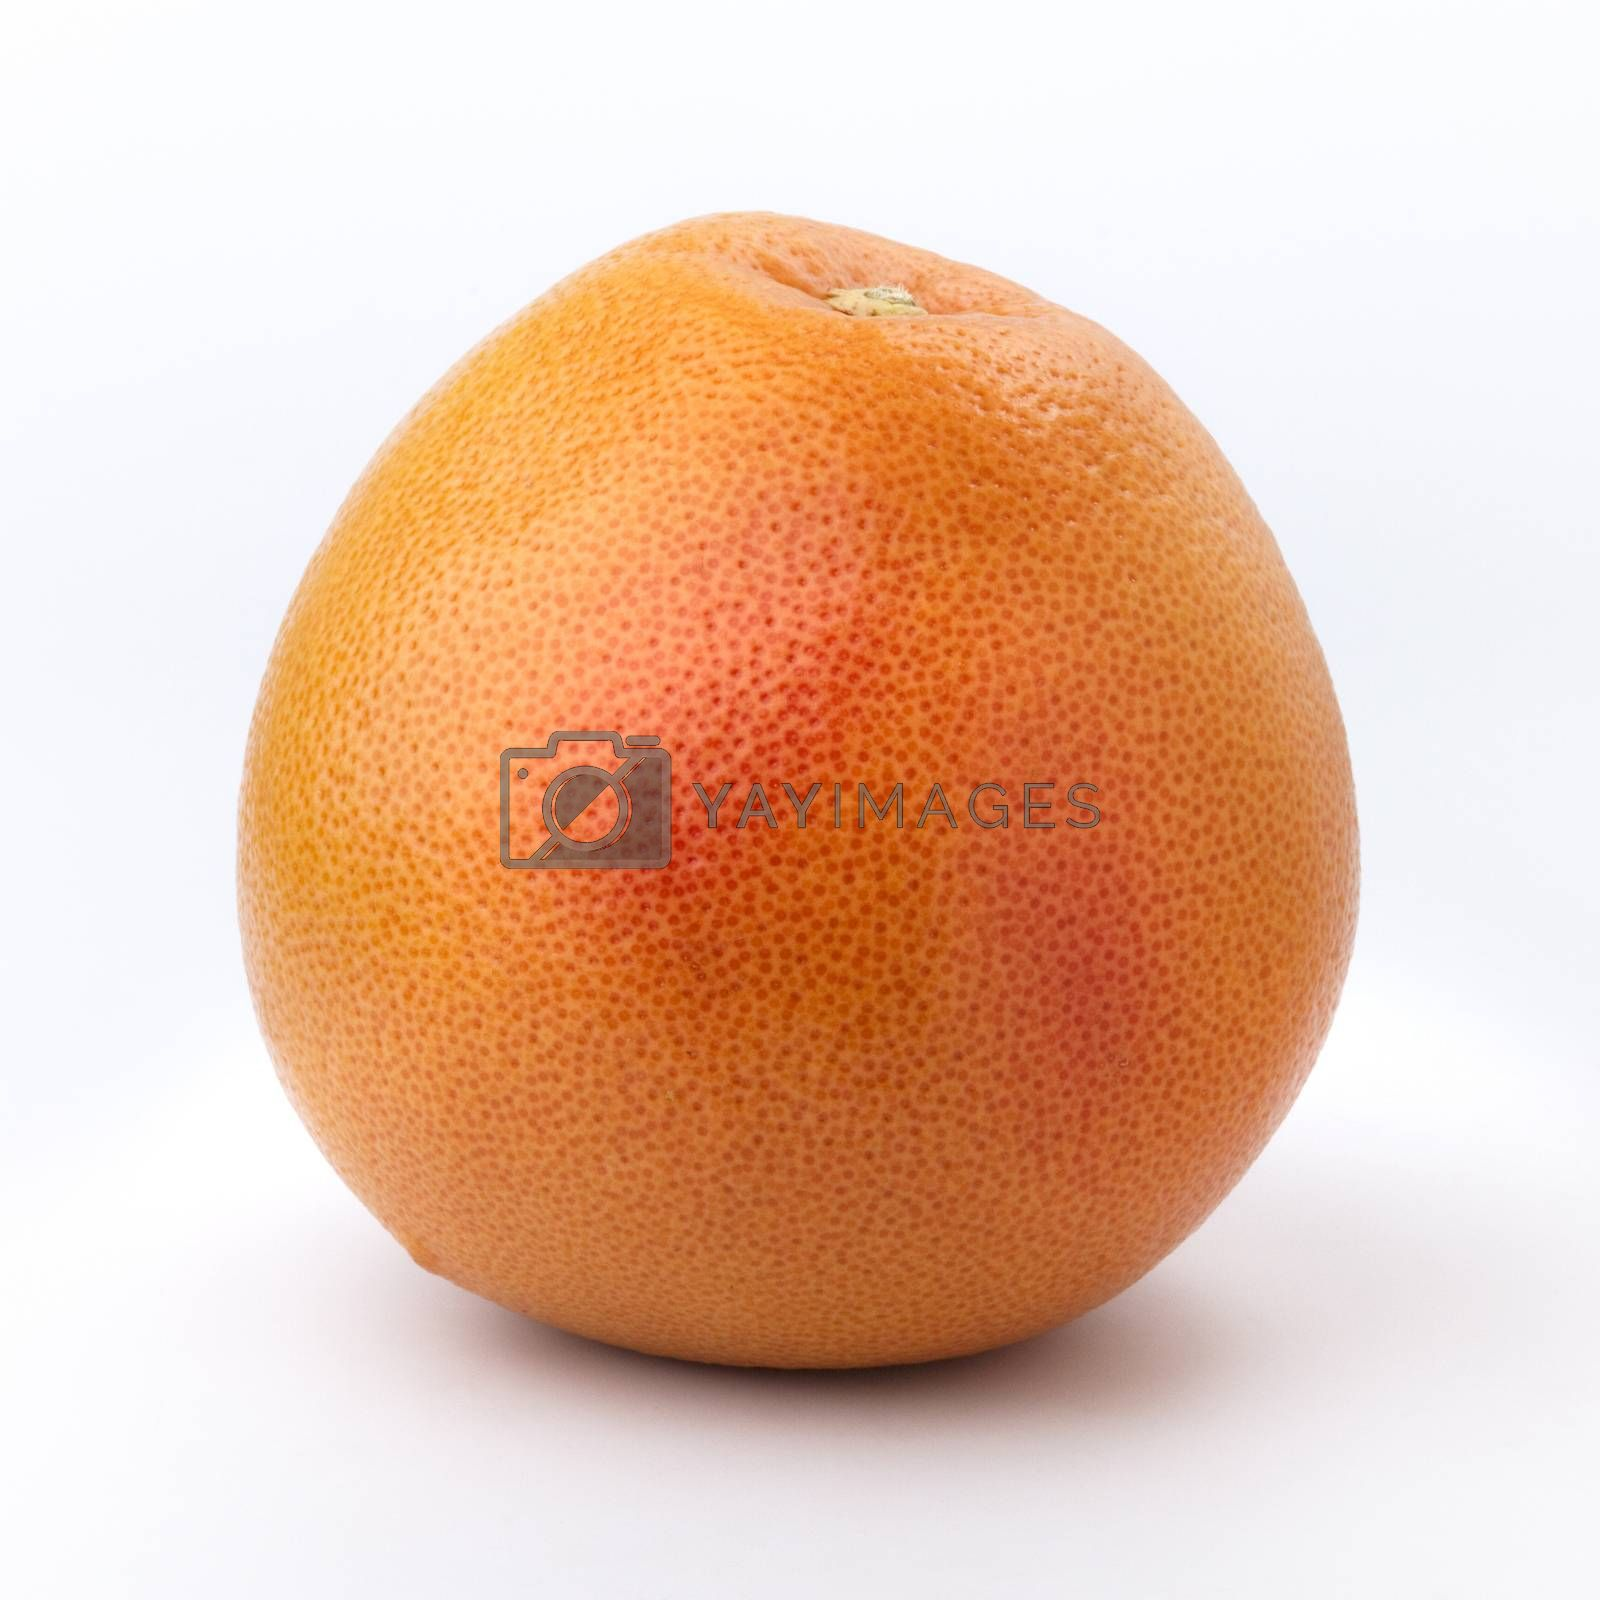 Royalty free image of Big Grapefruit by phortcach